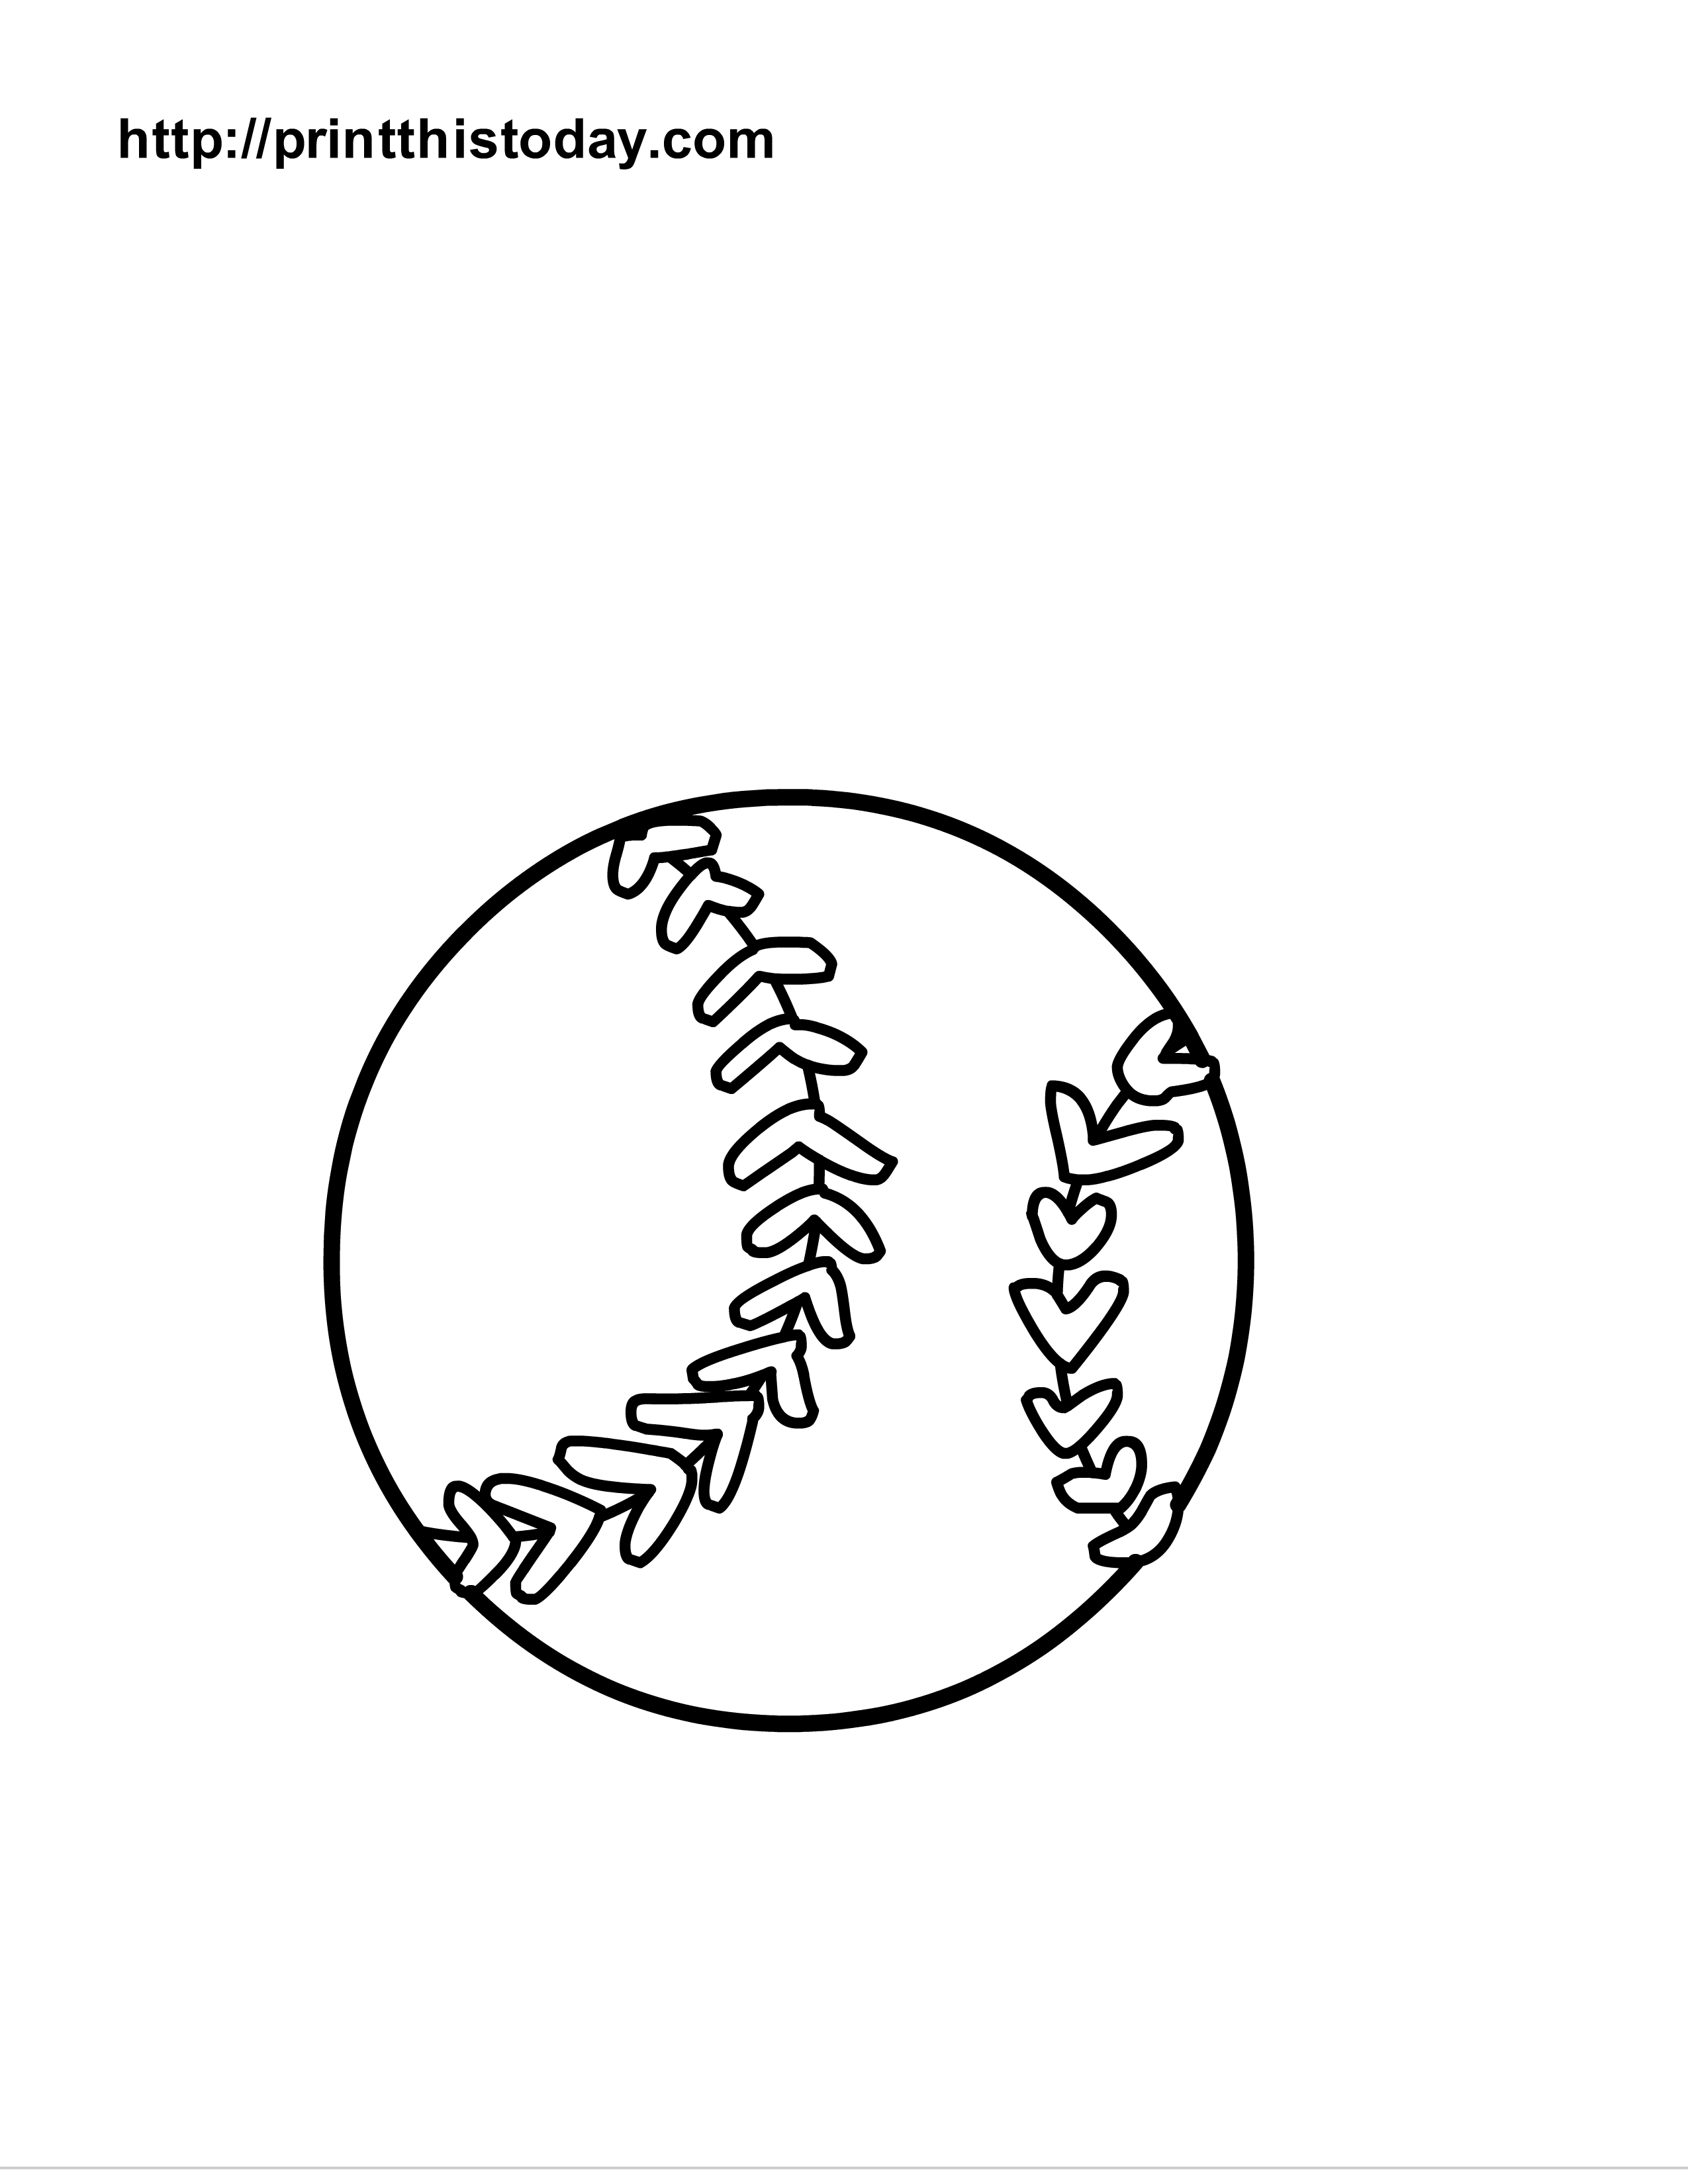 tennis ball coloring page tennis ball coloring download tennis ball coloring for tennis ball coloring page